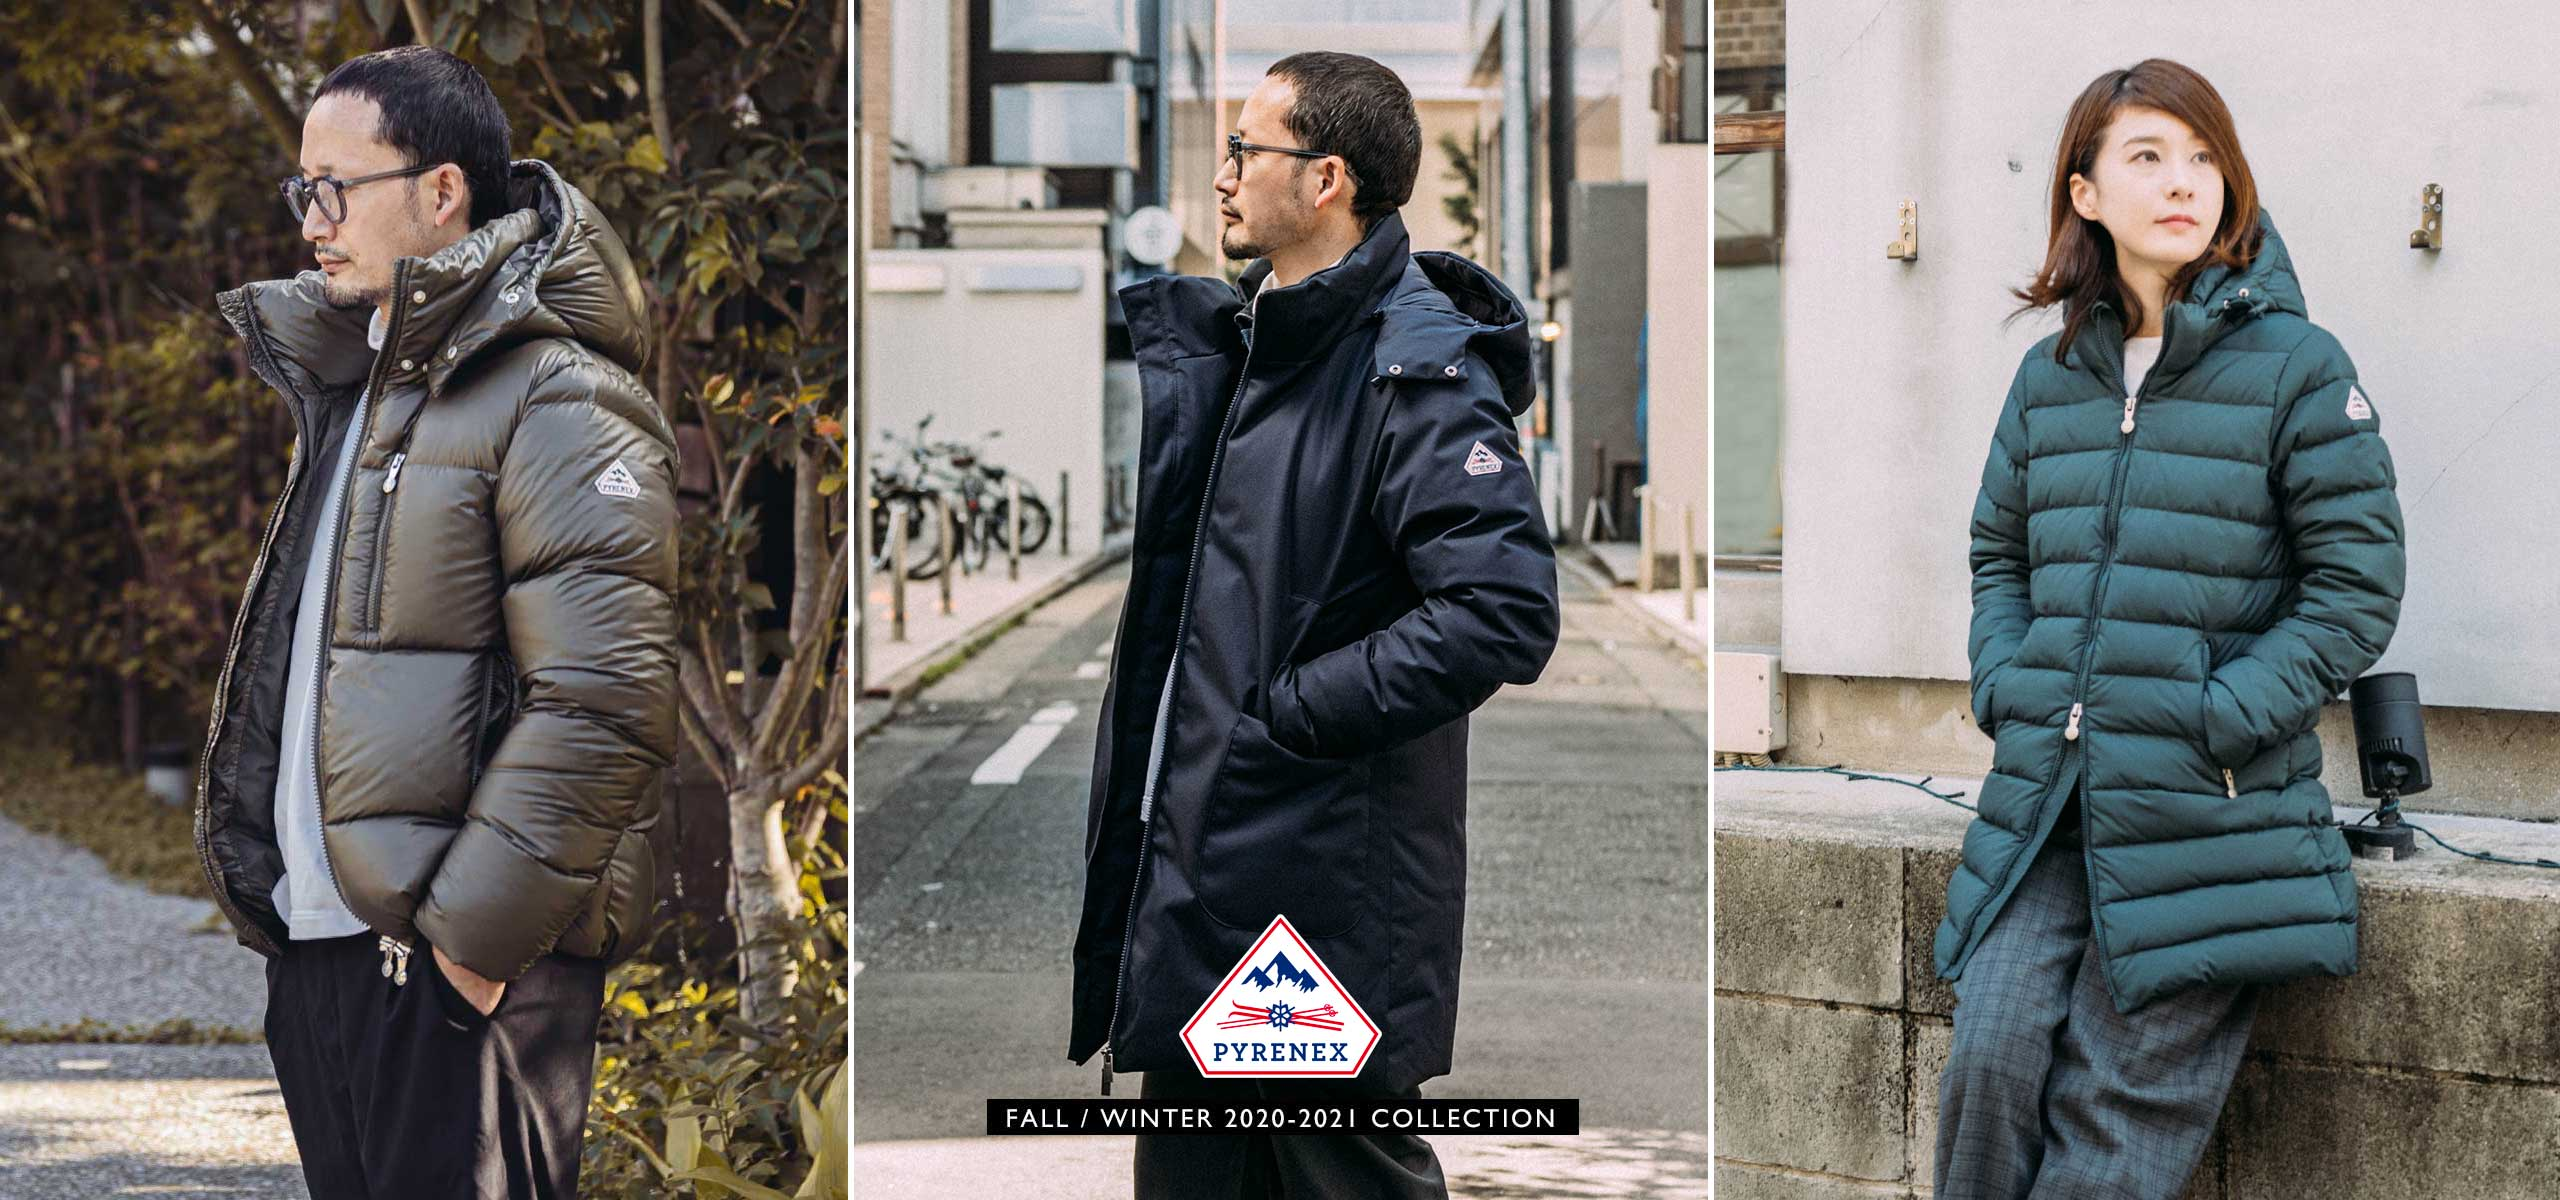 PYRENEX F/W 2020-2021 COLLECTION Vol.3